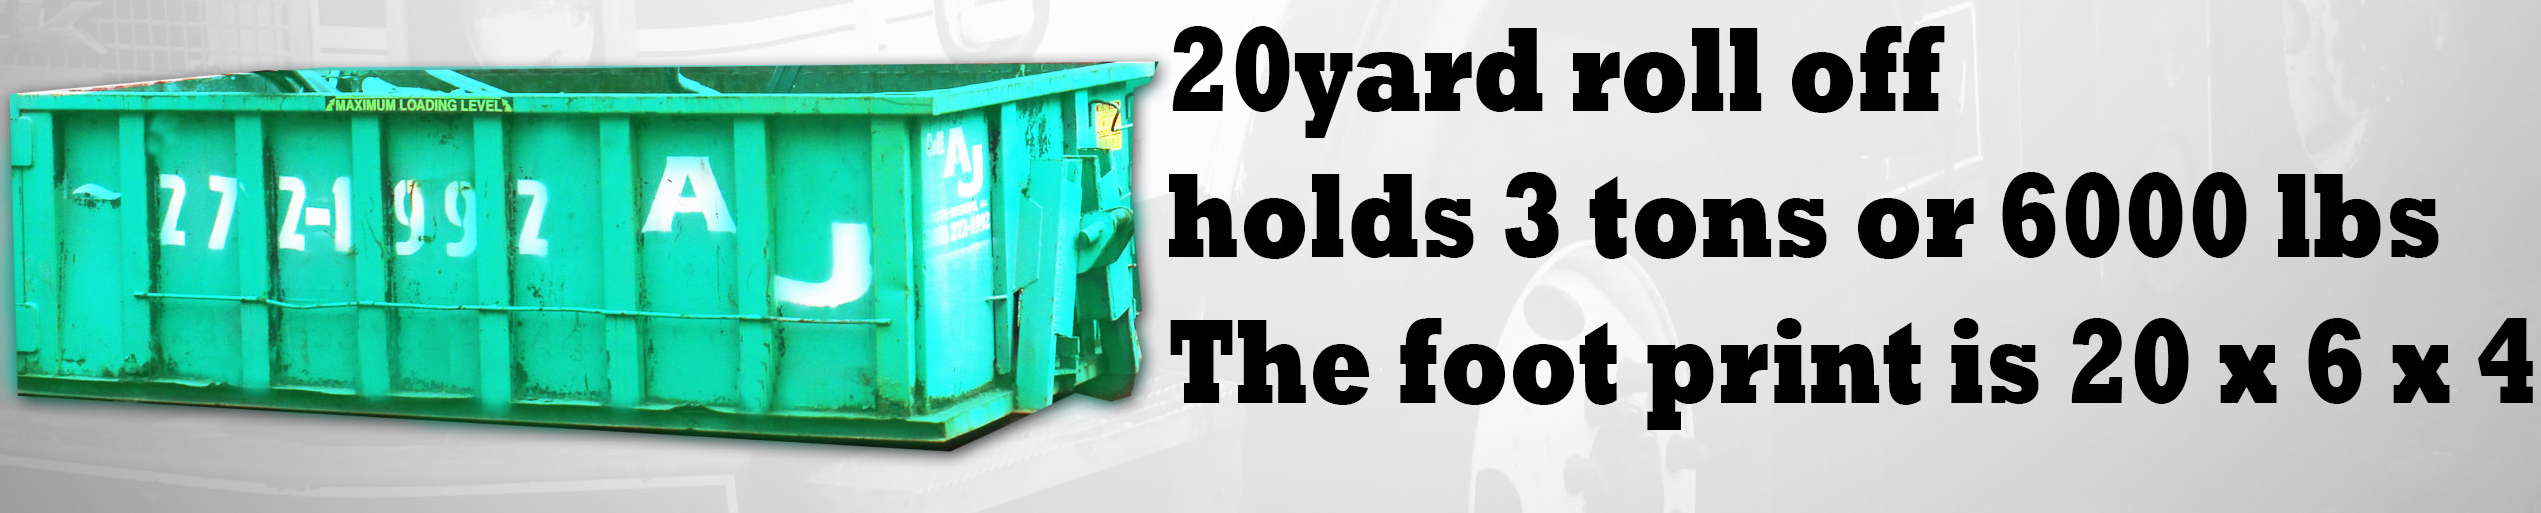 10 Or 20 Yard Dumpster Rentals And Roll Off Dumpster Service For 10 Yard Waste Containers For The State Of Connecticu Dumpster Rental Waste Container Dumpster